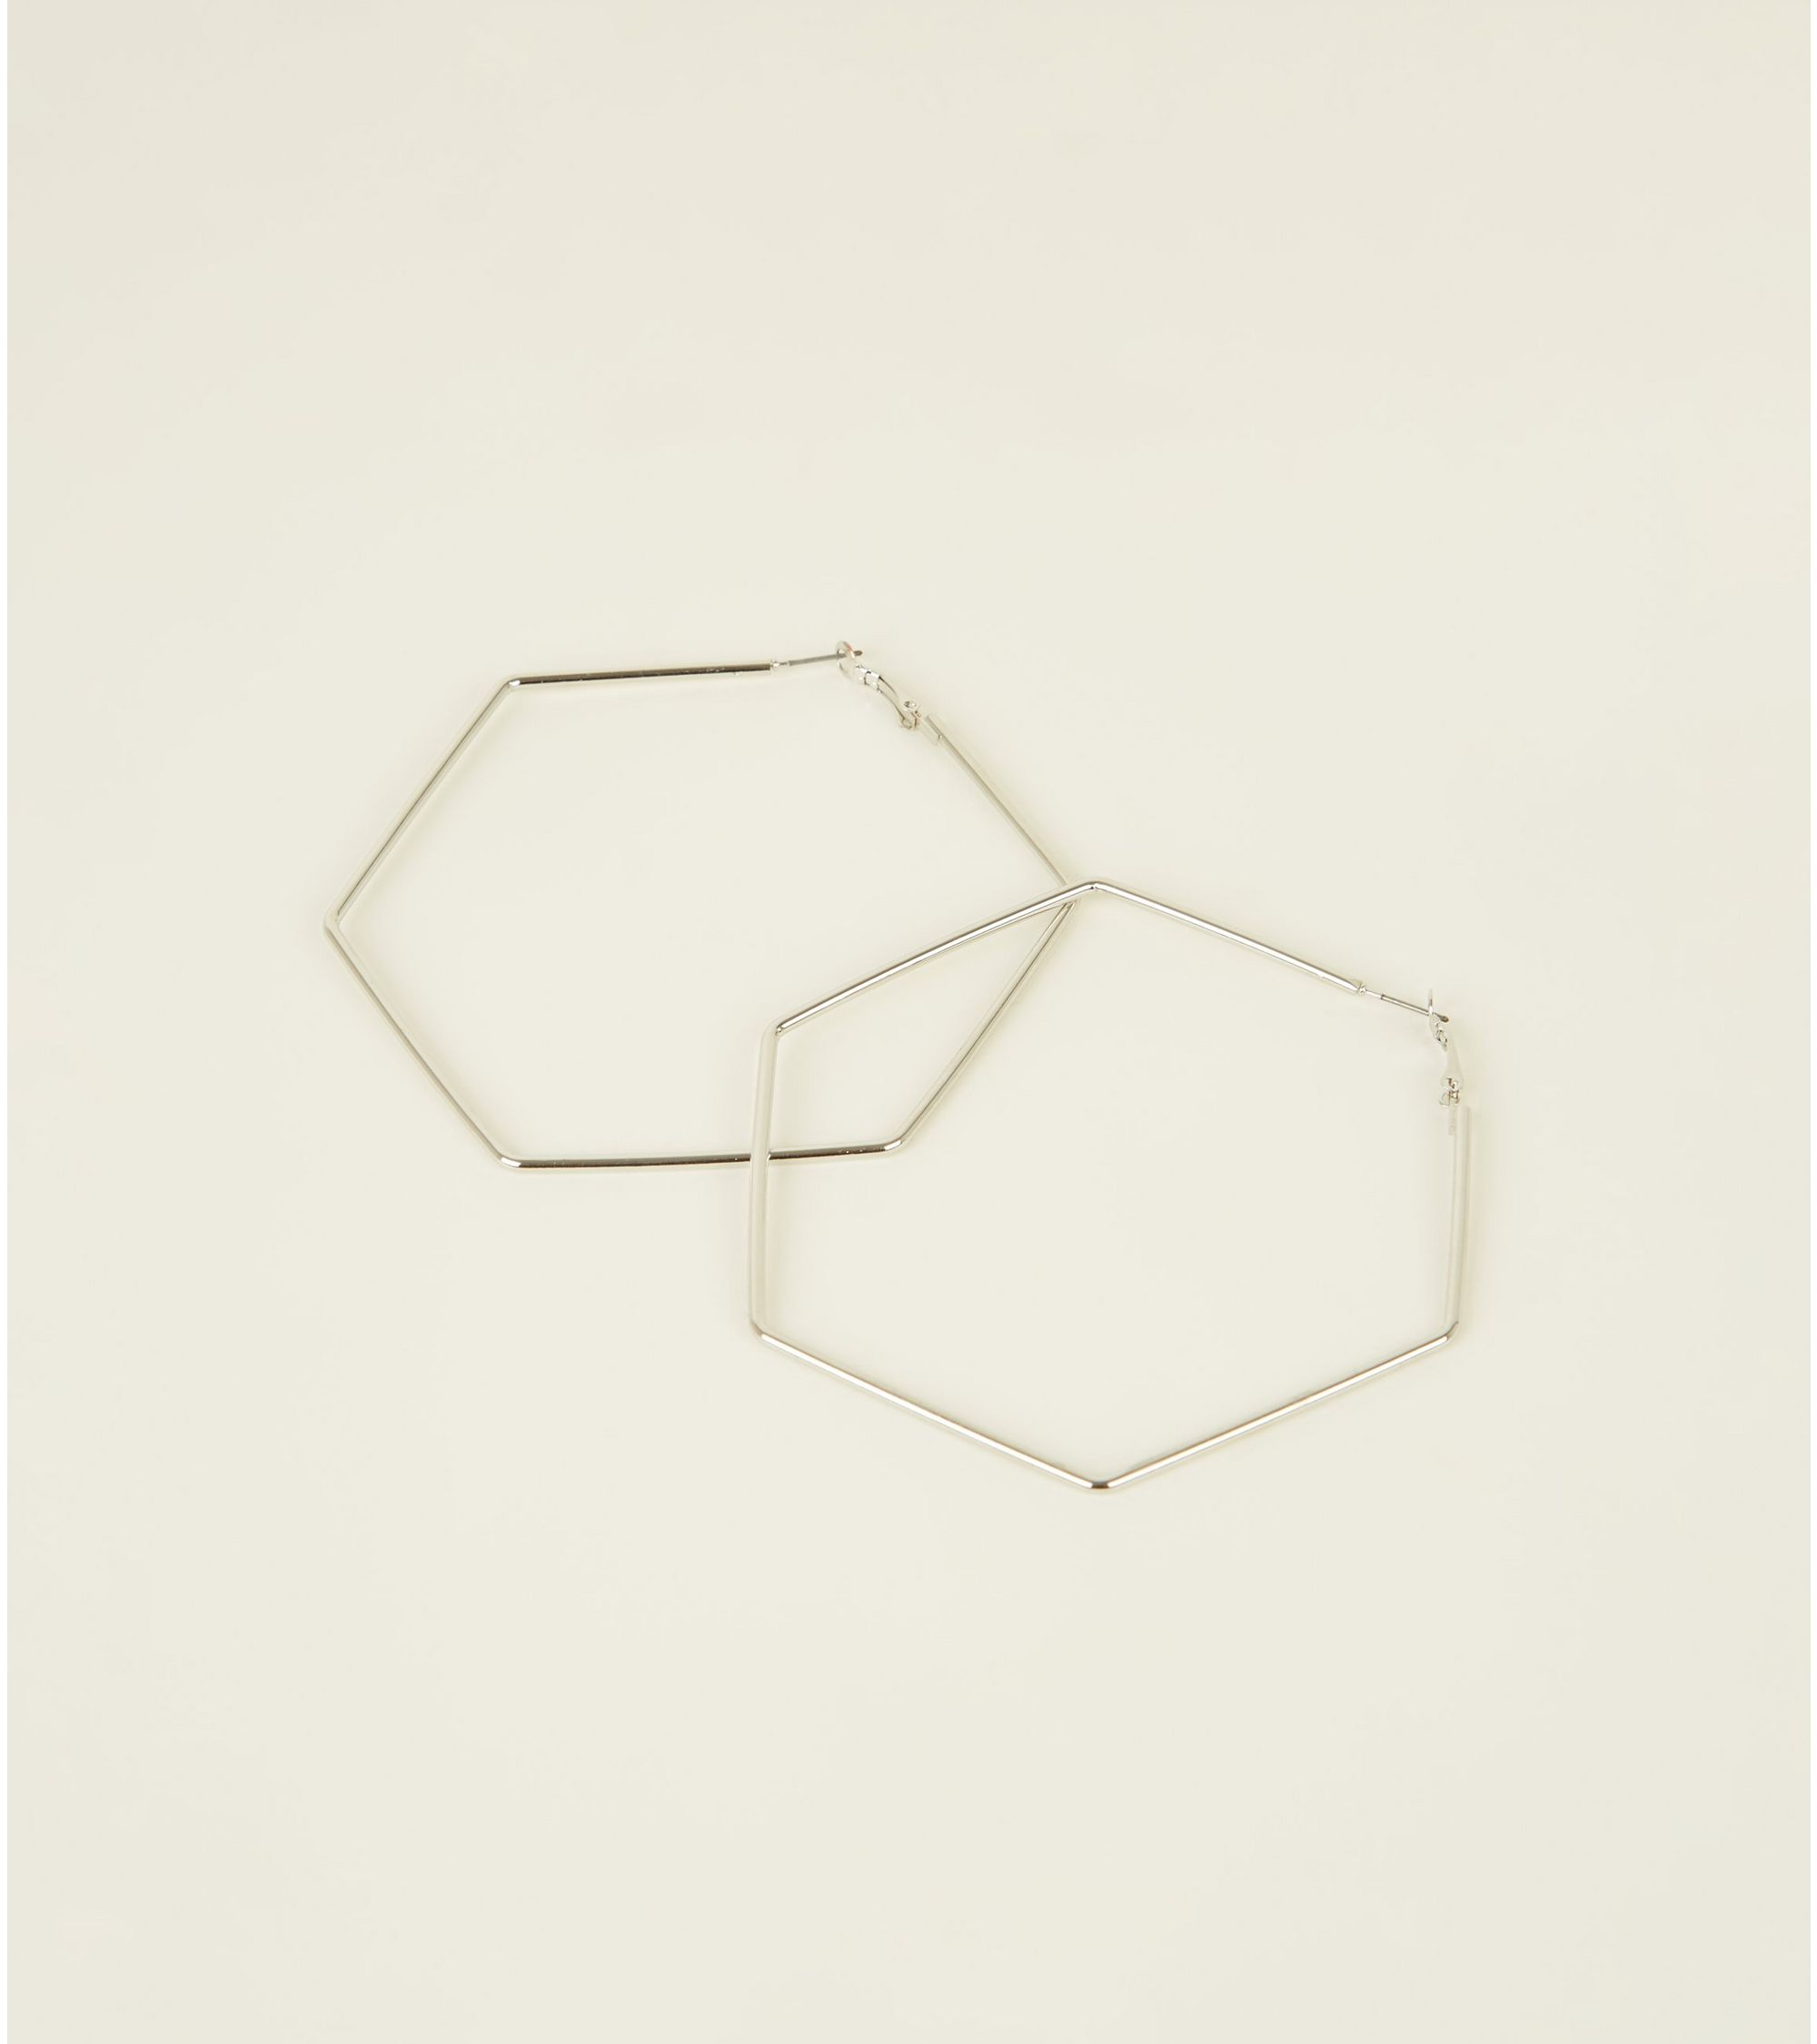 metal collectives make earrings products hexagon image hoop